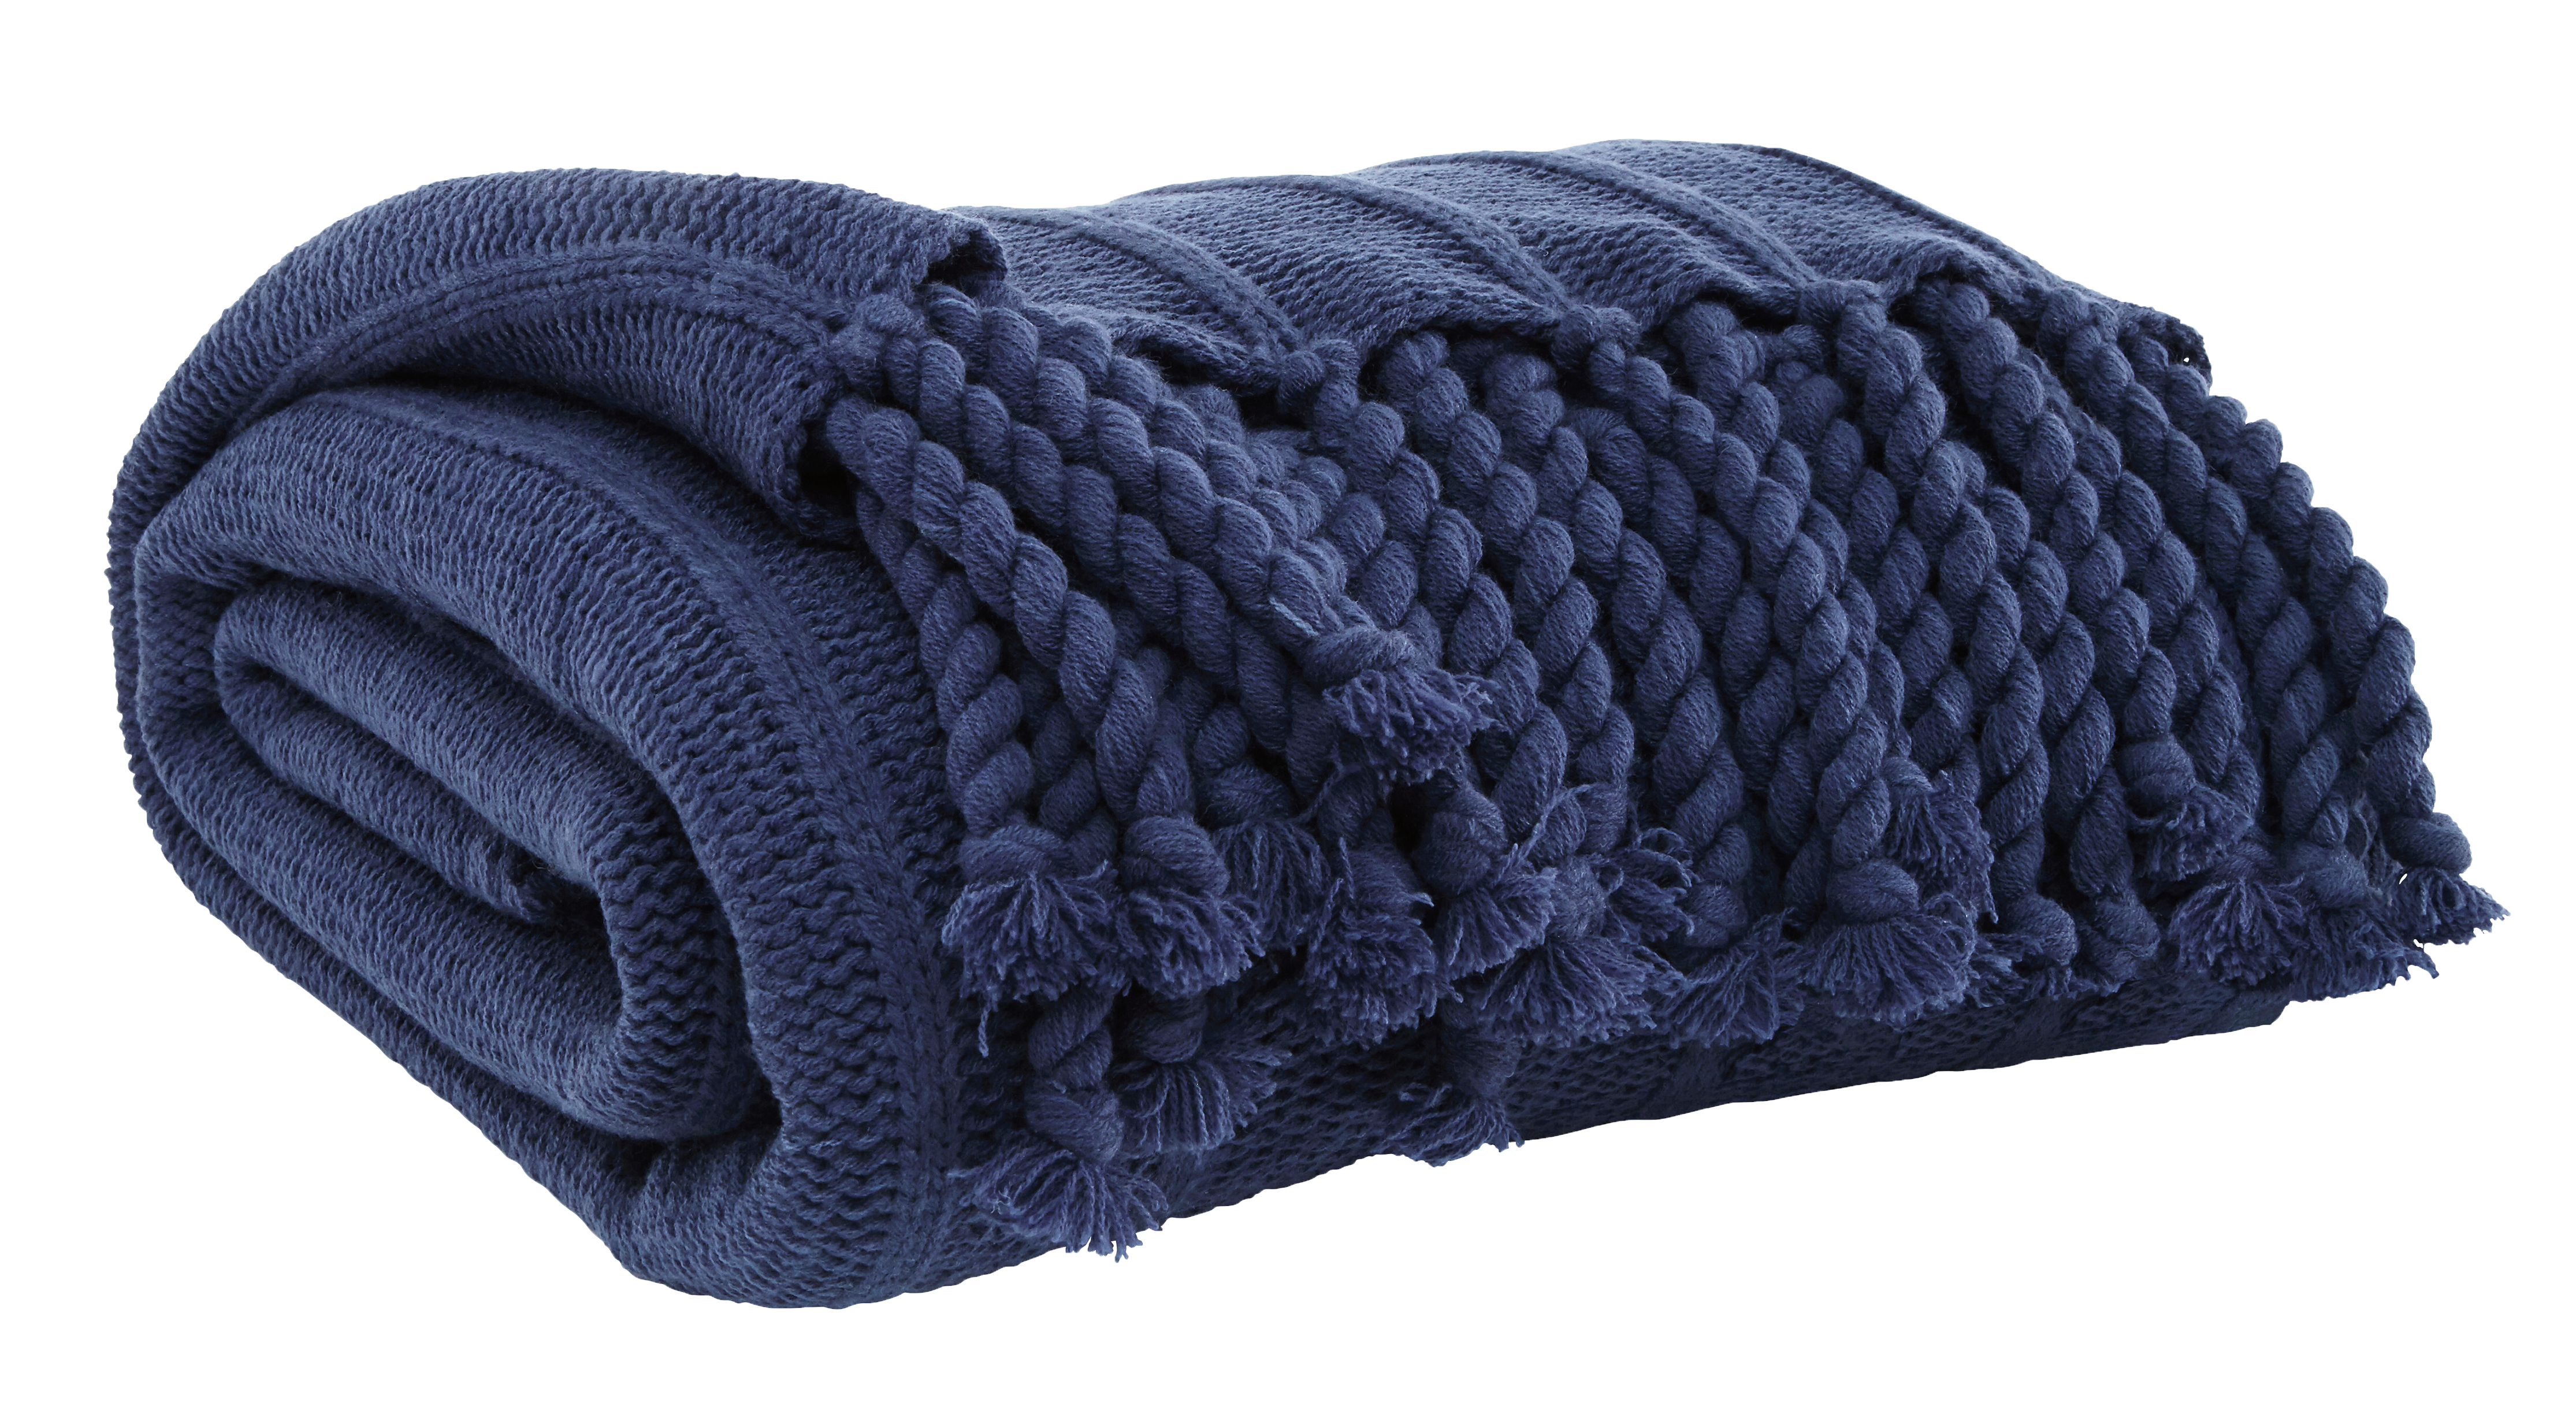 Navy Blue throw blanket